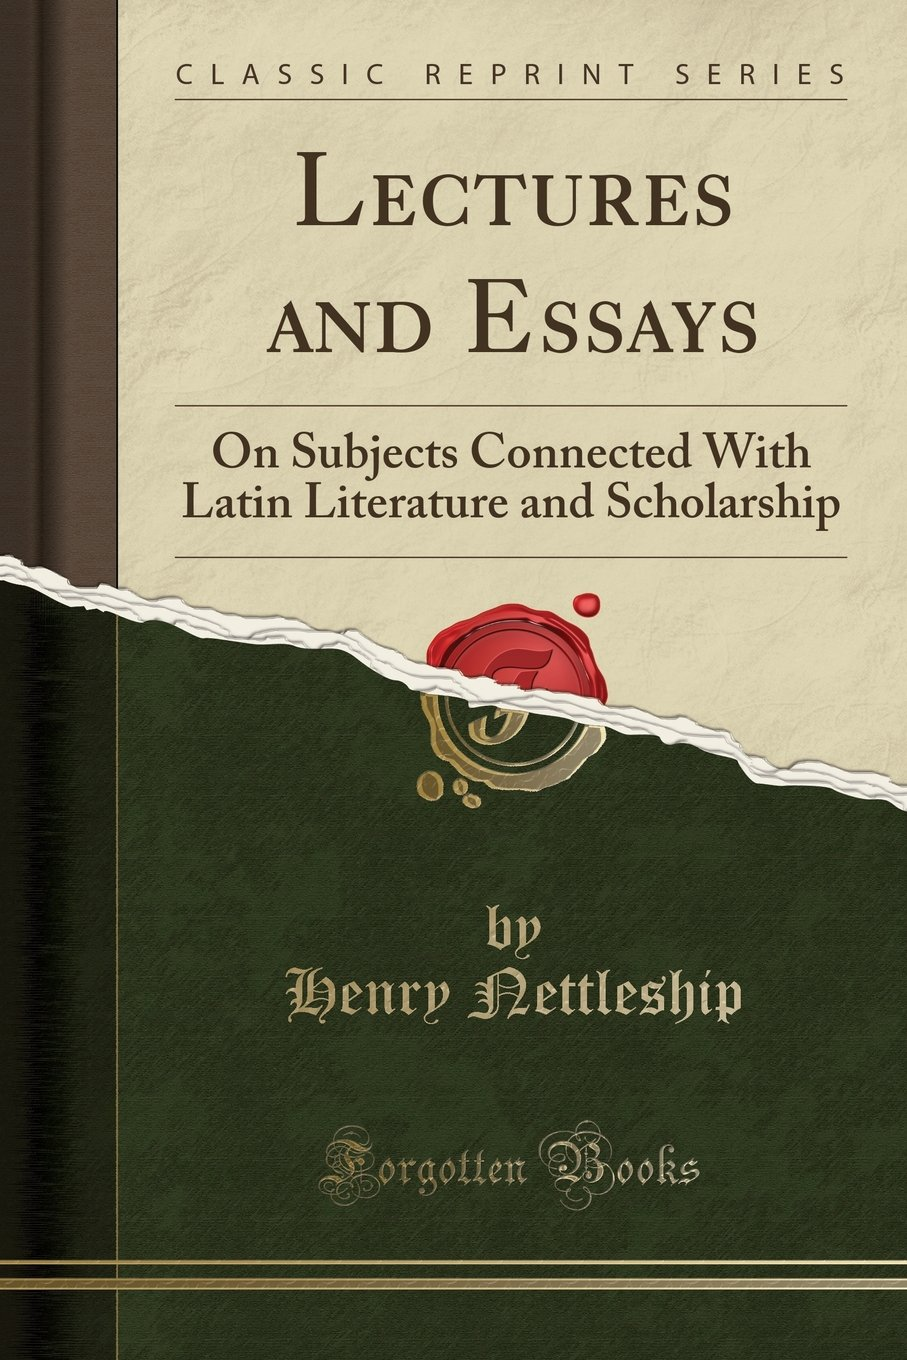 Lectures and Essays: On Subjects Connected With Latin Literature and Scholarship (Classic Reprint) pdf